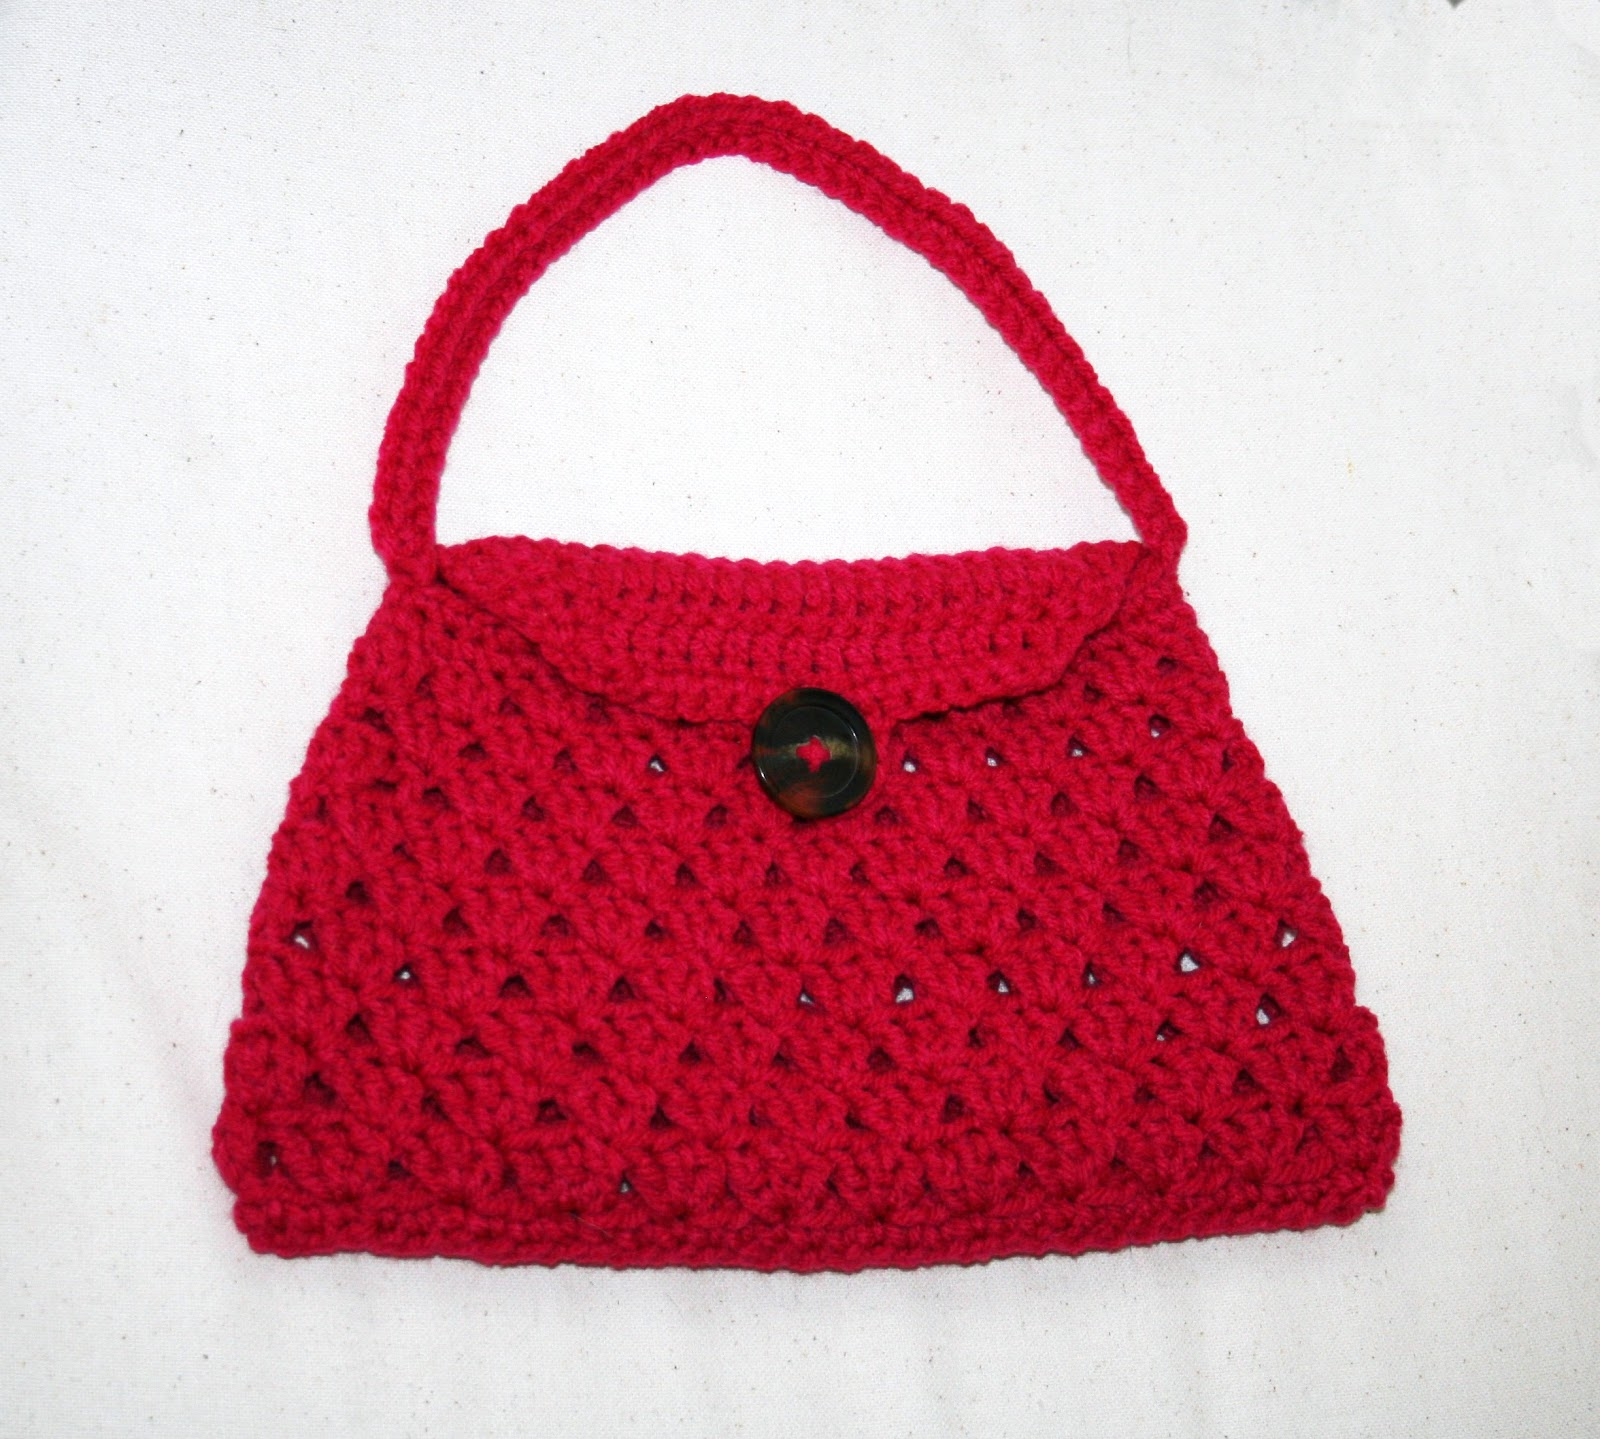 Crochet Handbag Pattern : Tampa Bay Crochet: Free Crochet Pattern: Stylish Crochet Handbag